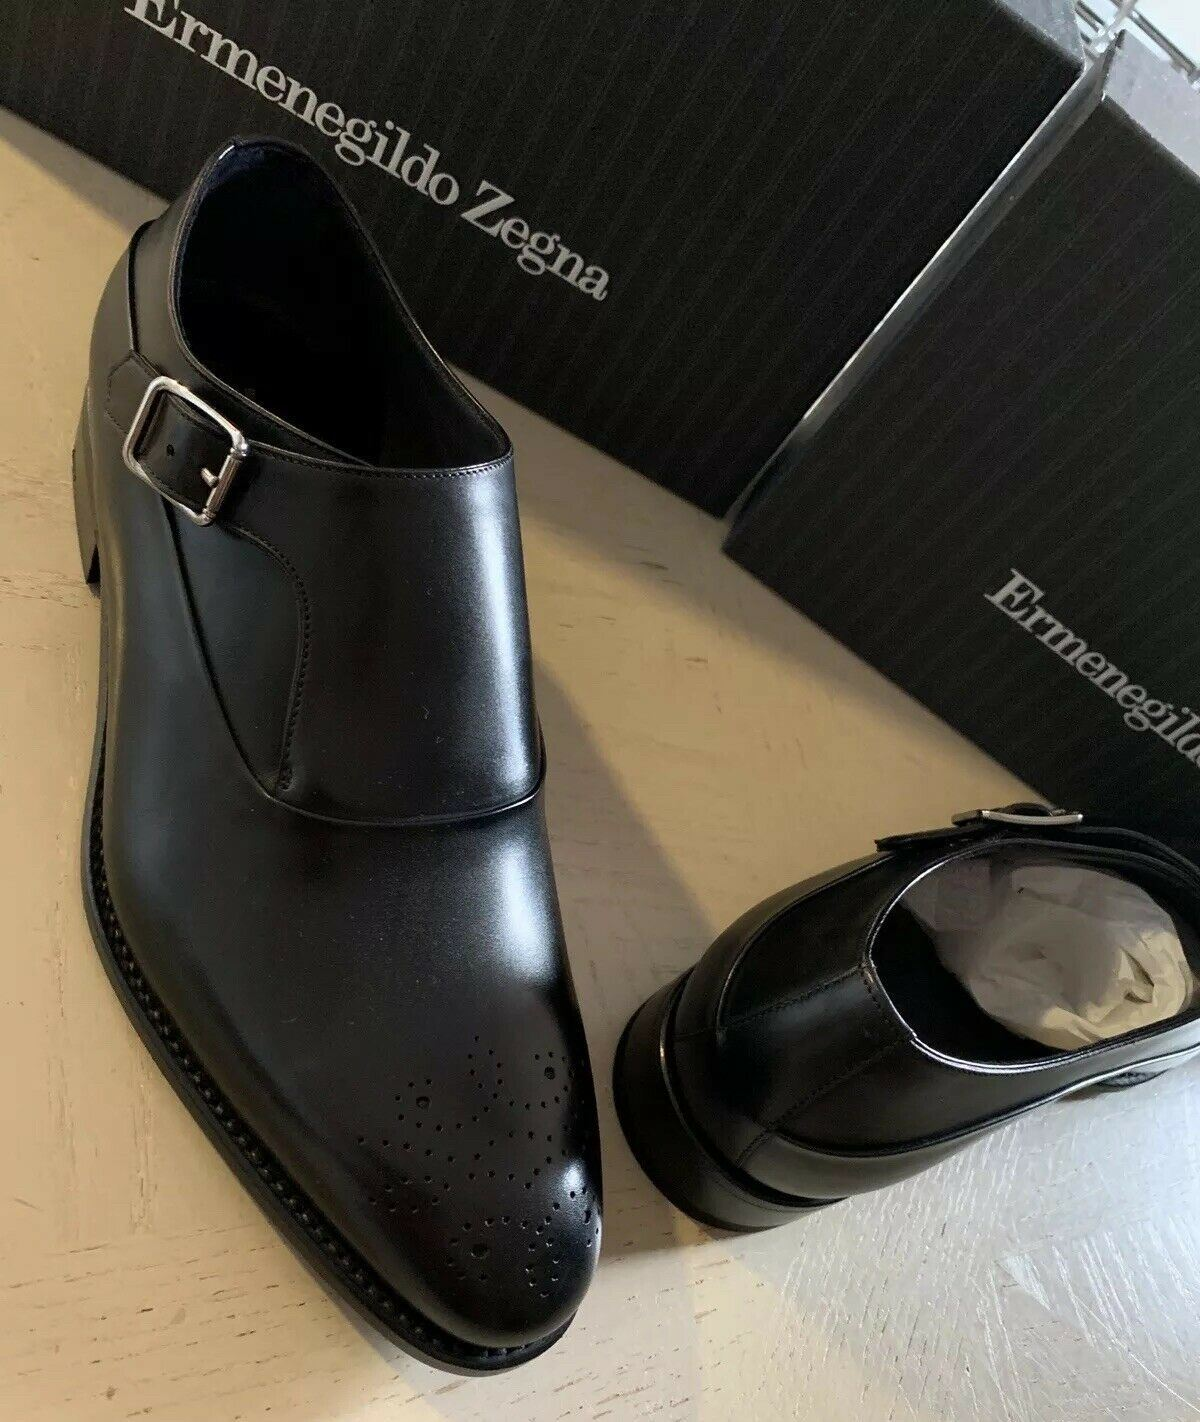 New $1350 Ermenegildo Zegna Couture Monk Brogues Leather Shoes Black 11.5 US Ita